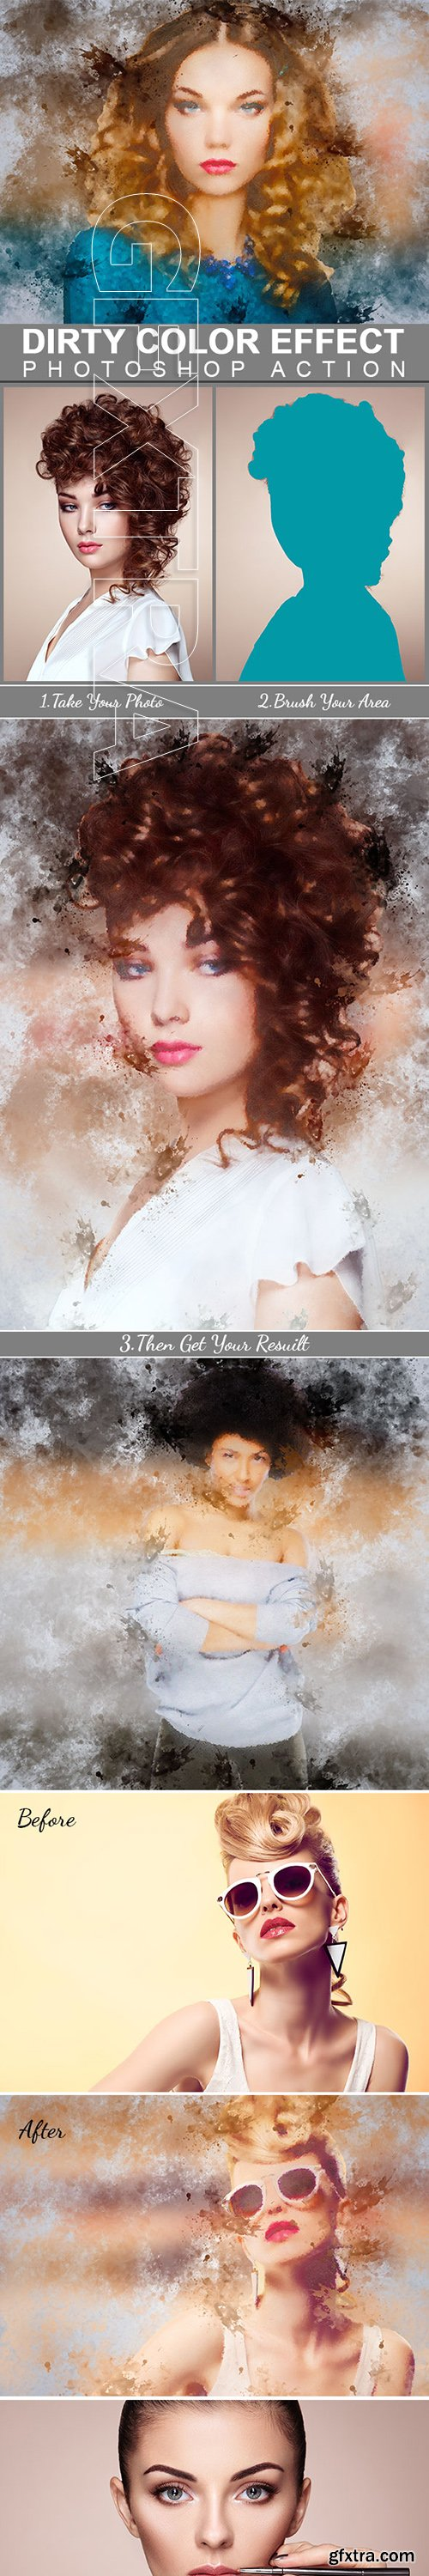 GraphicRiver - Dirty Color Effect Photoshop Action 22563994